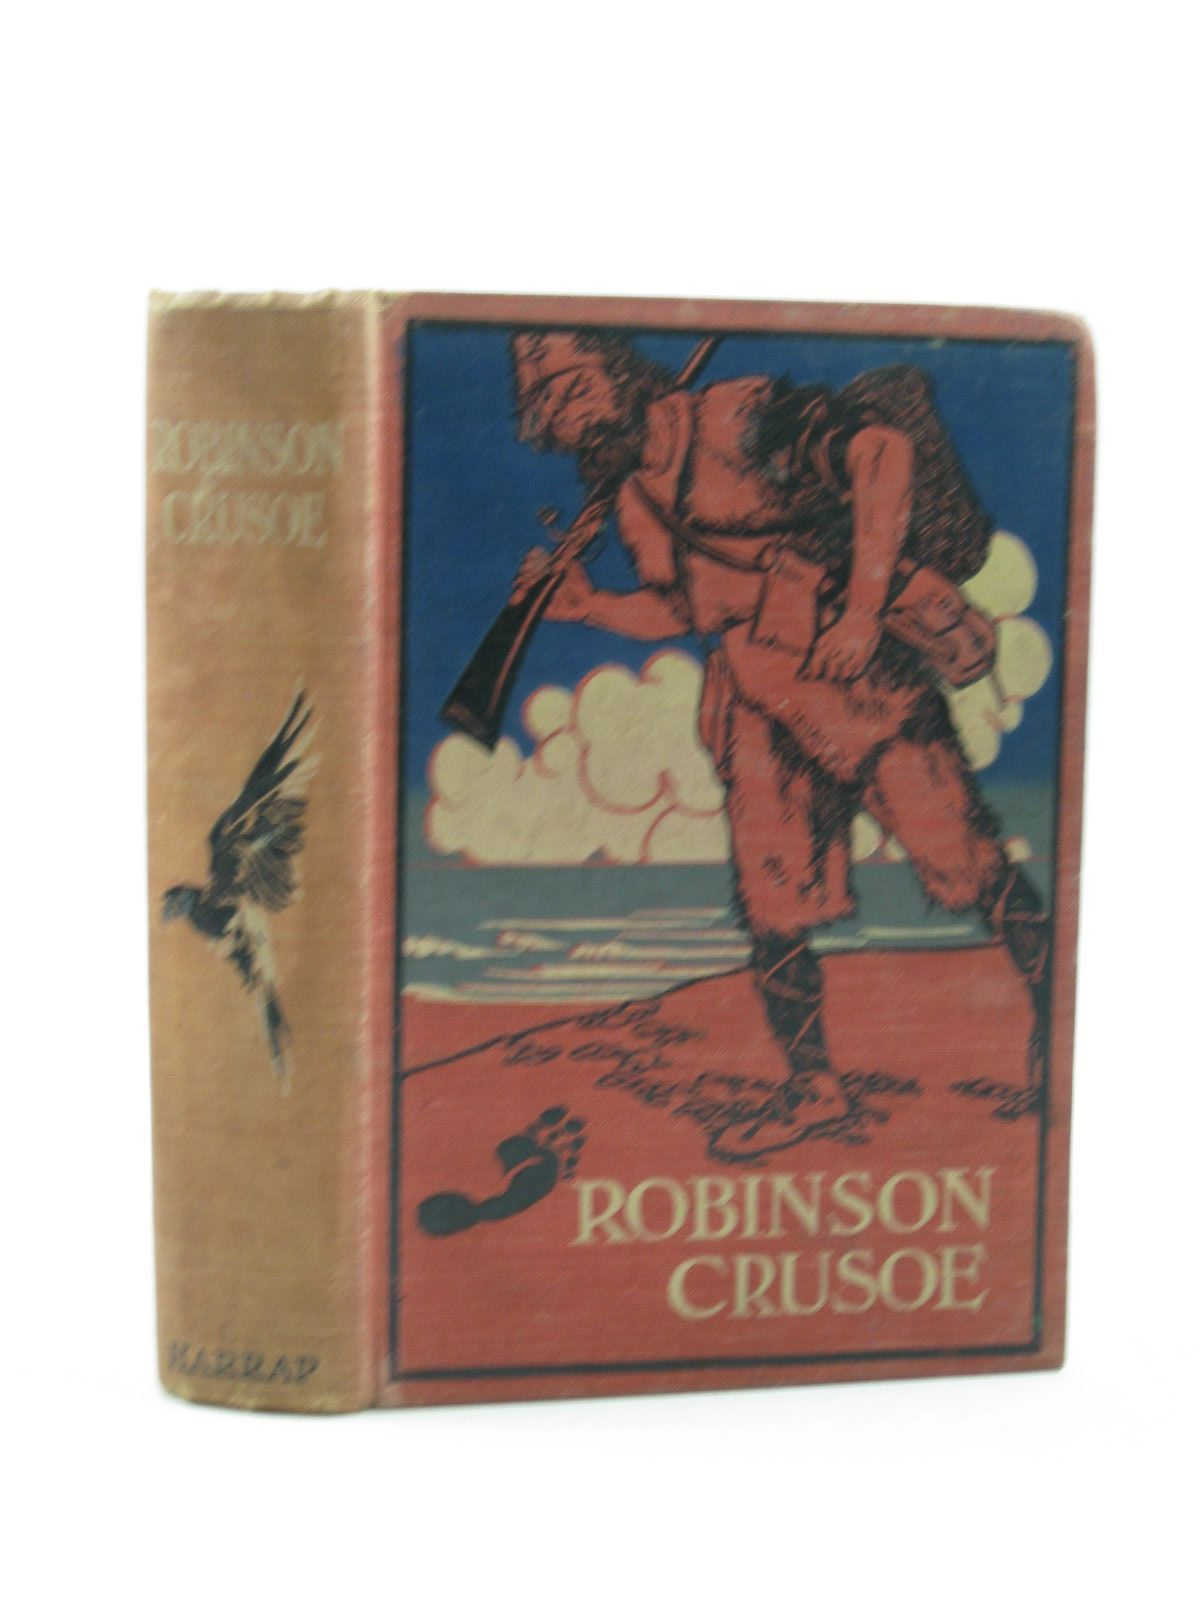 robinson crusoe by daniel defoe featured books stella rose s 10 00 photo of robinson crusoe